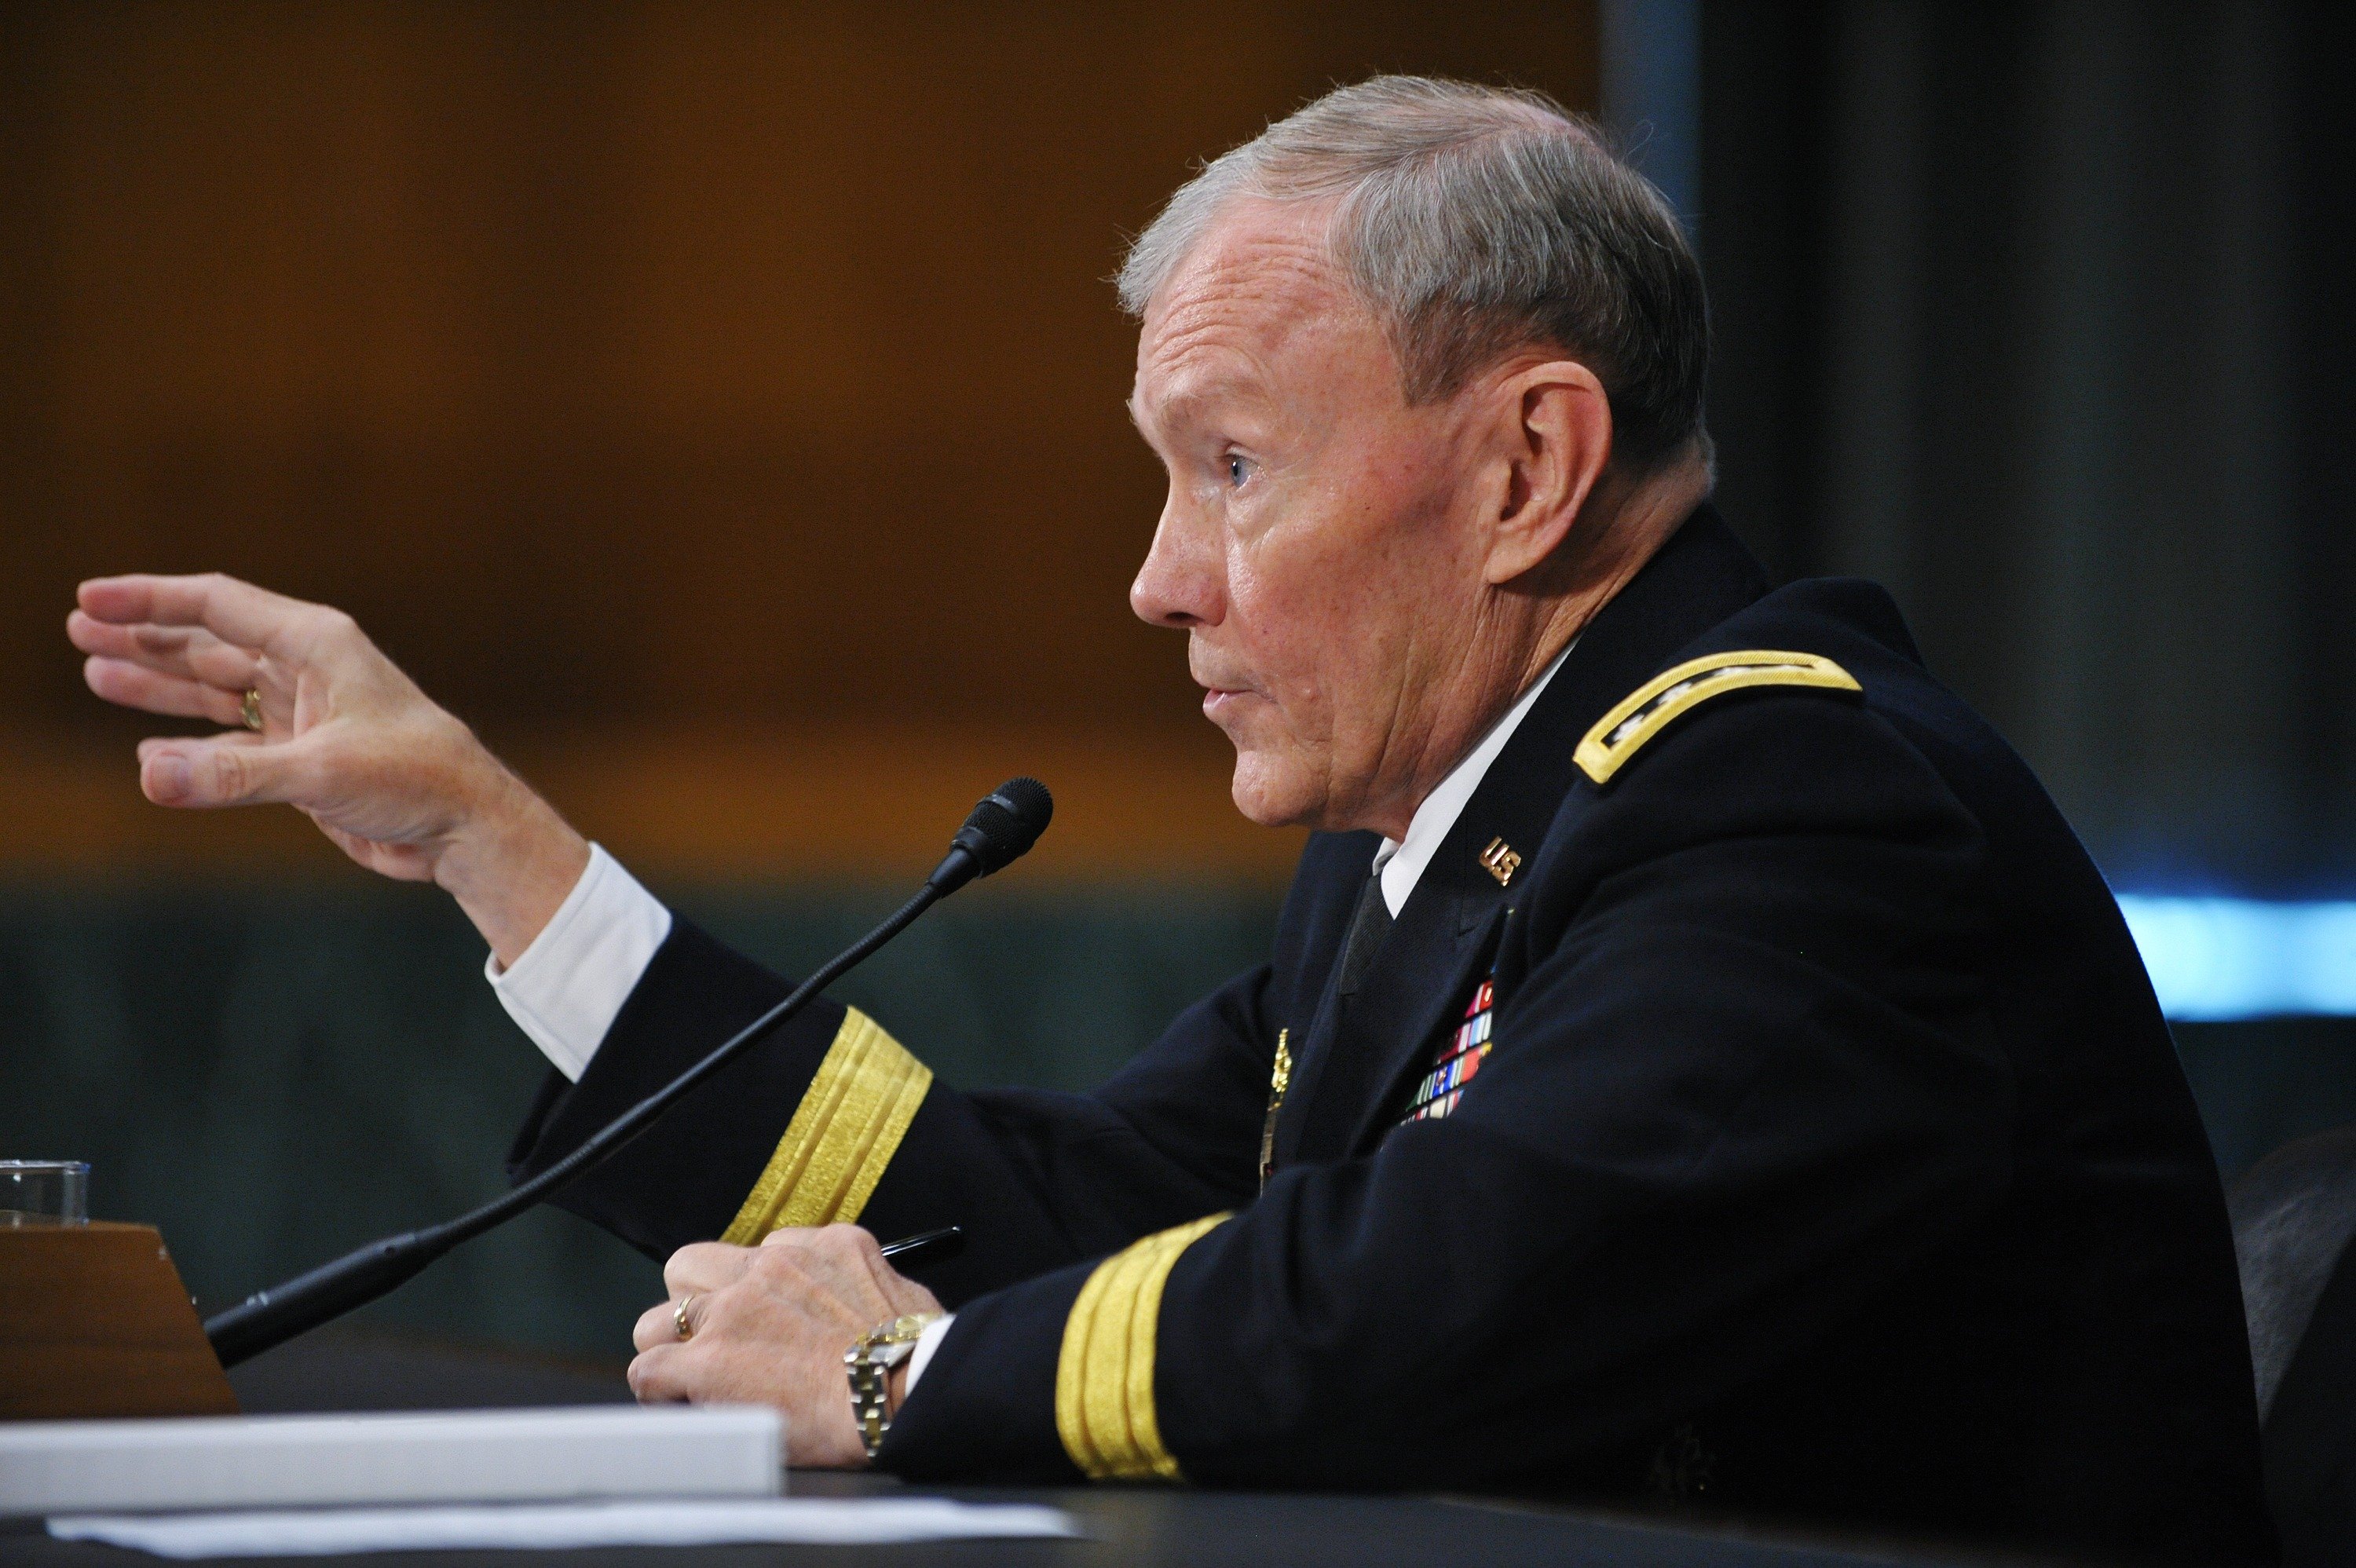 Dempsey confirmation hearing becomes a venue for venting about defense budget cuts